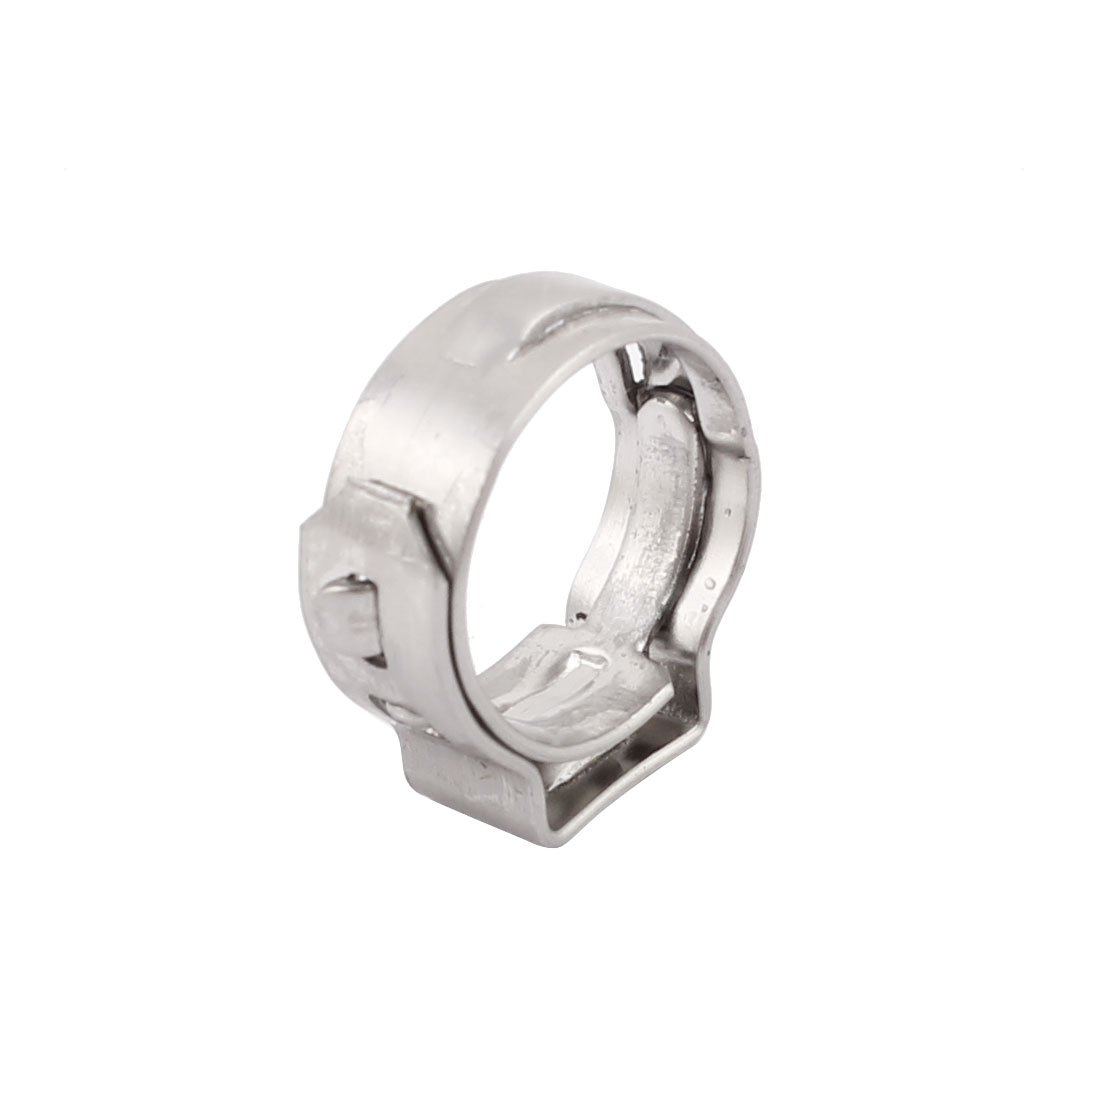 uxcell 8.8mm-10.5mm 304 Stainless Steel Adjustable Tube Hose Clamps Silver Tone 50pcs